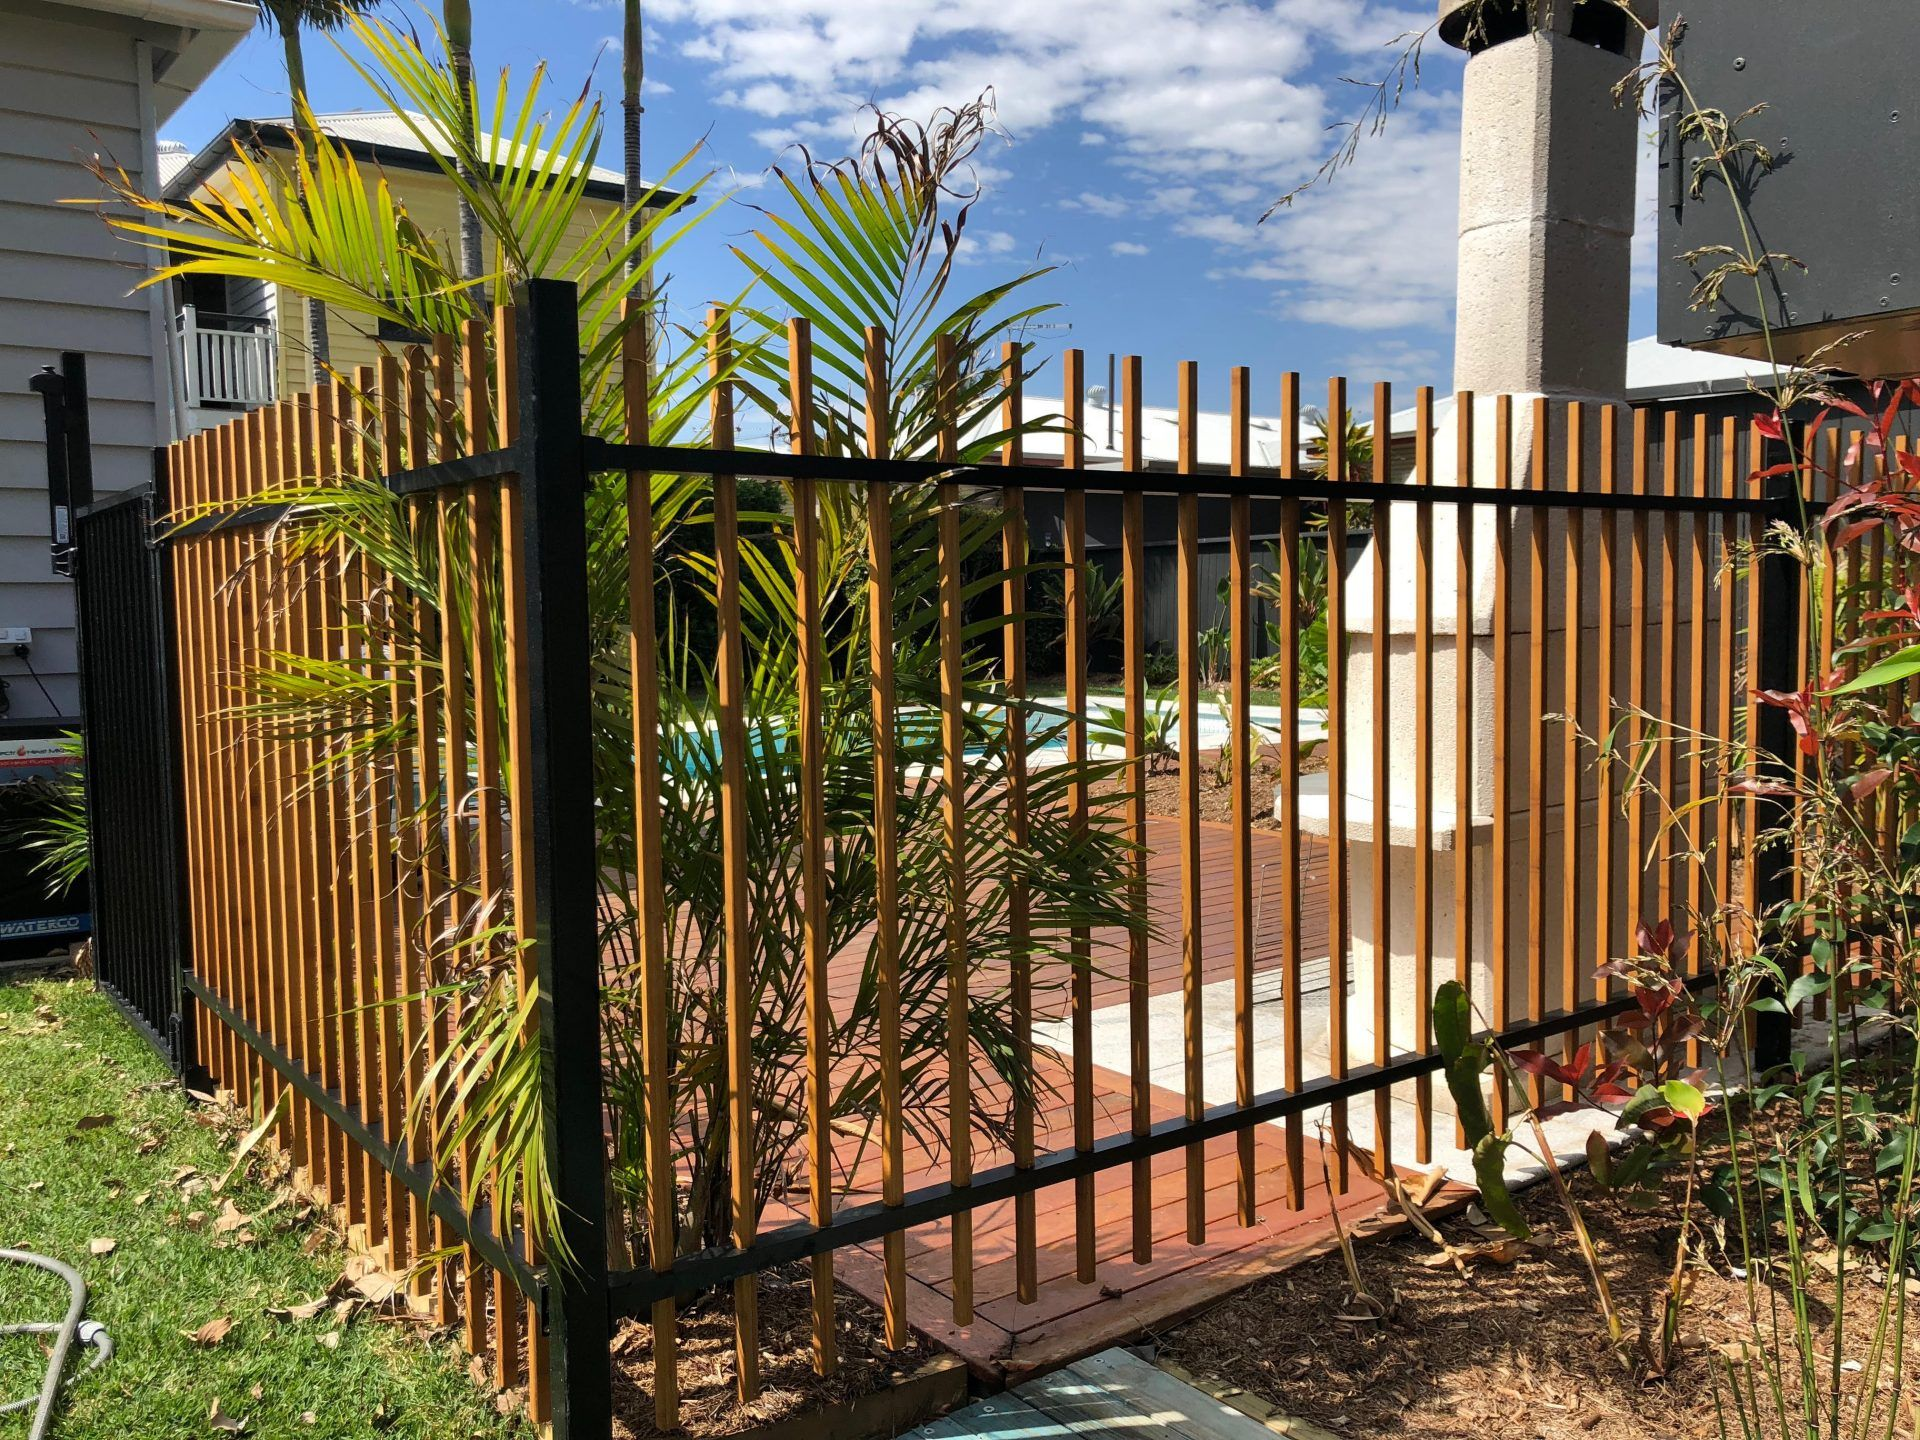 Pool Fencing Bamboo Building Products Aluminum Pool Fence Fence Design Diy Pool Fence